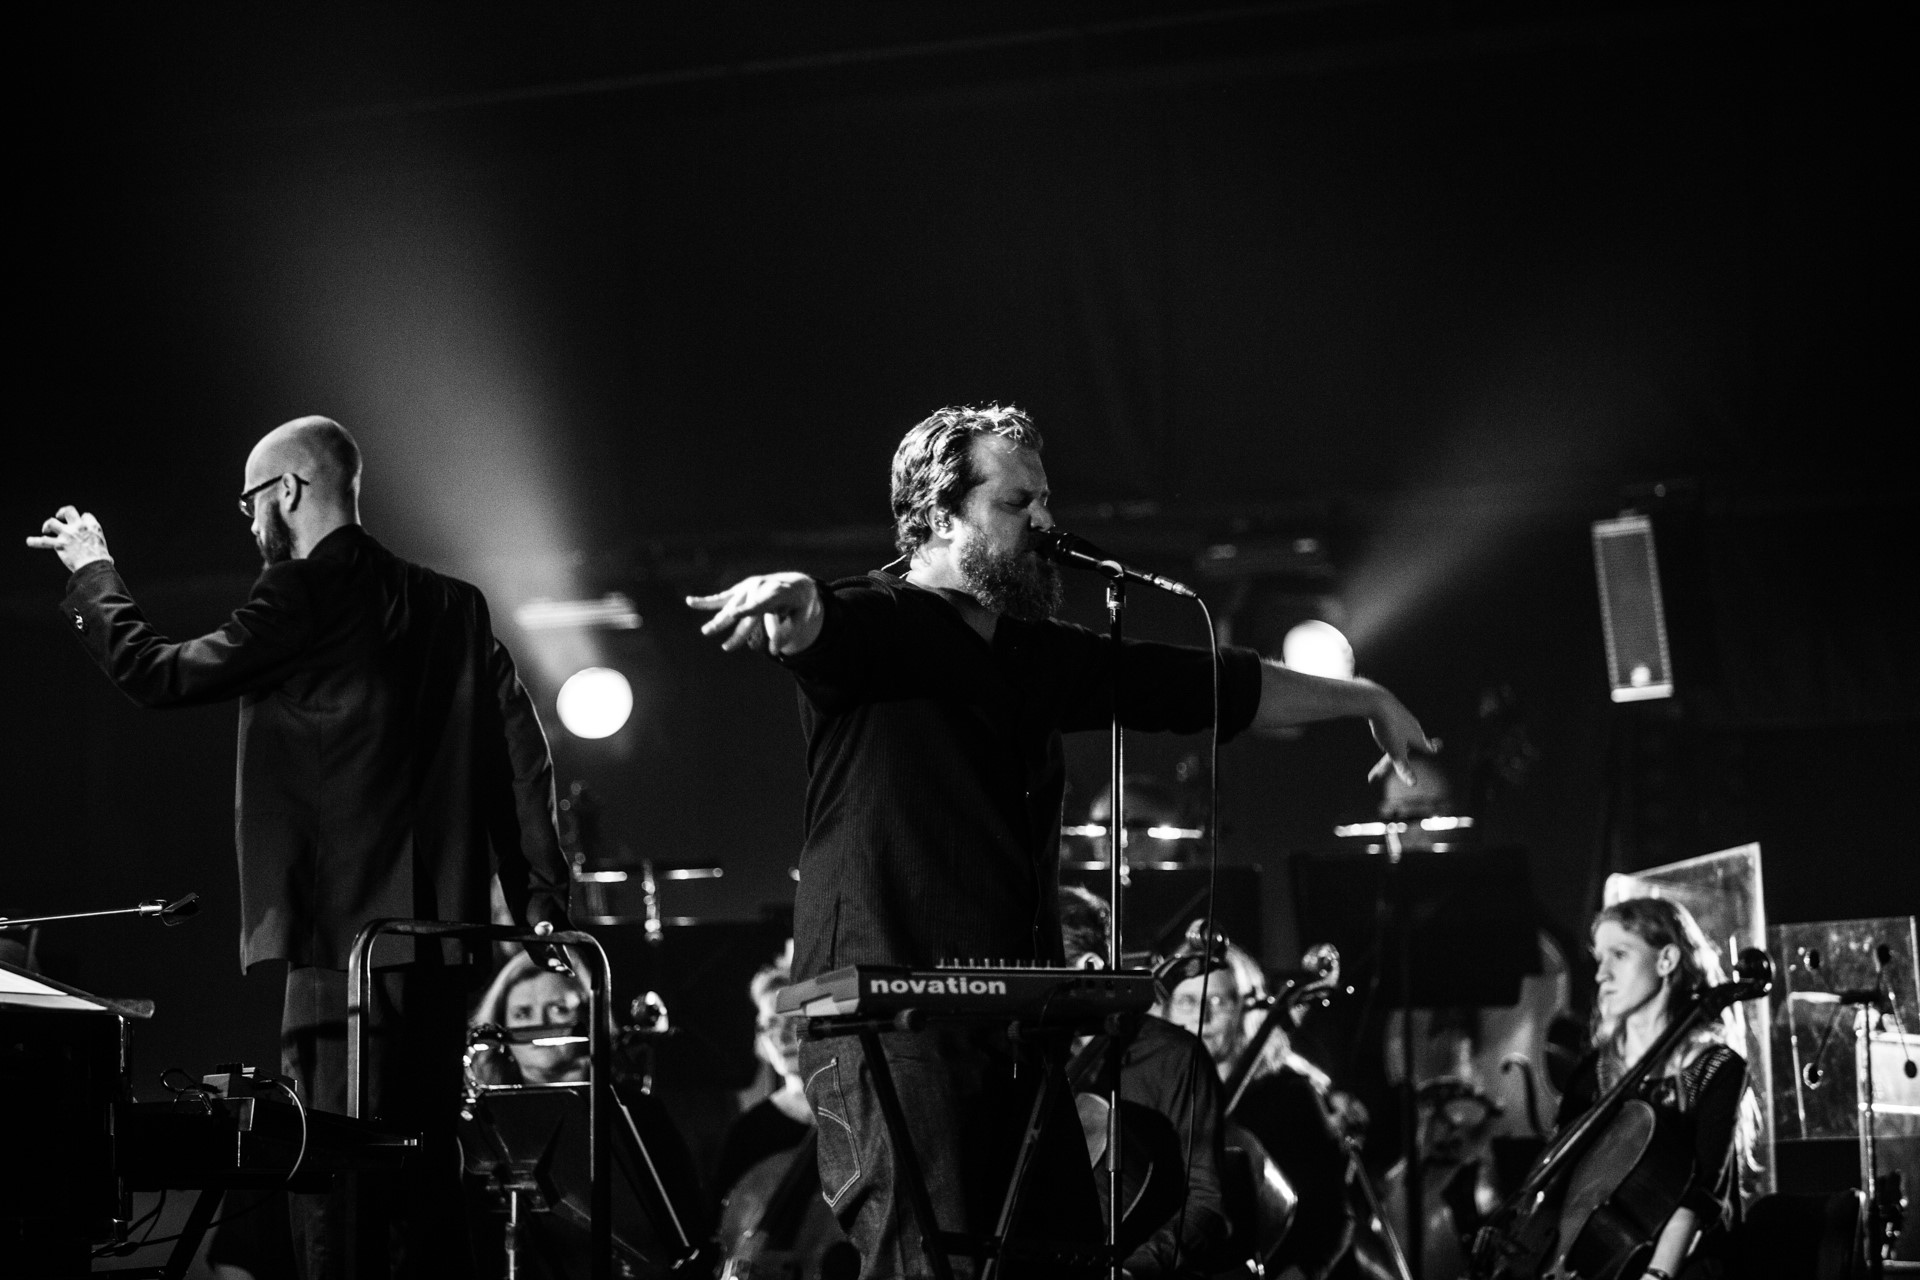 John Grant on stage at Harpa Concert Hall